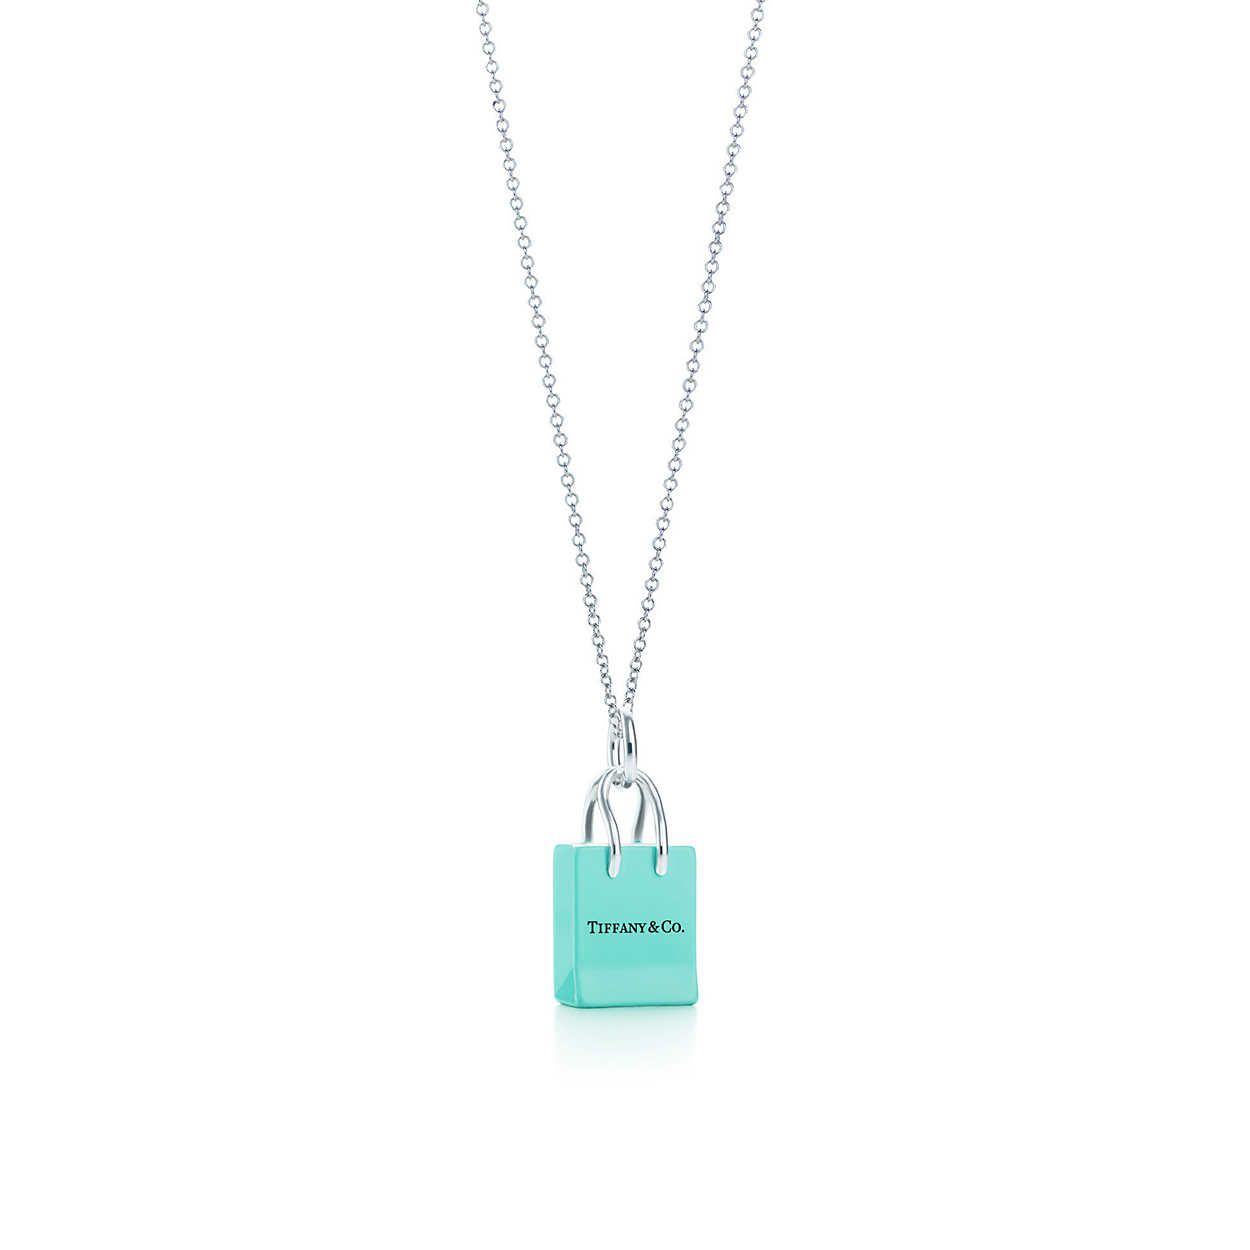 850143a681 Shopping Bag charm with enamel finish in silver on a chain. | Tiffany & Co.